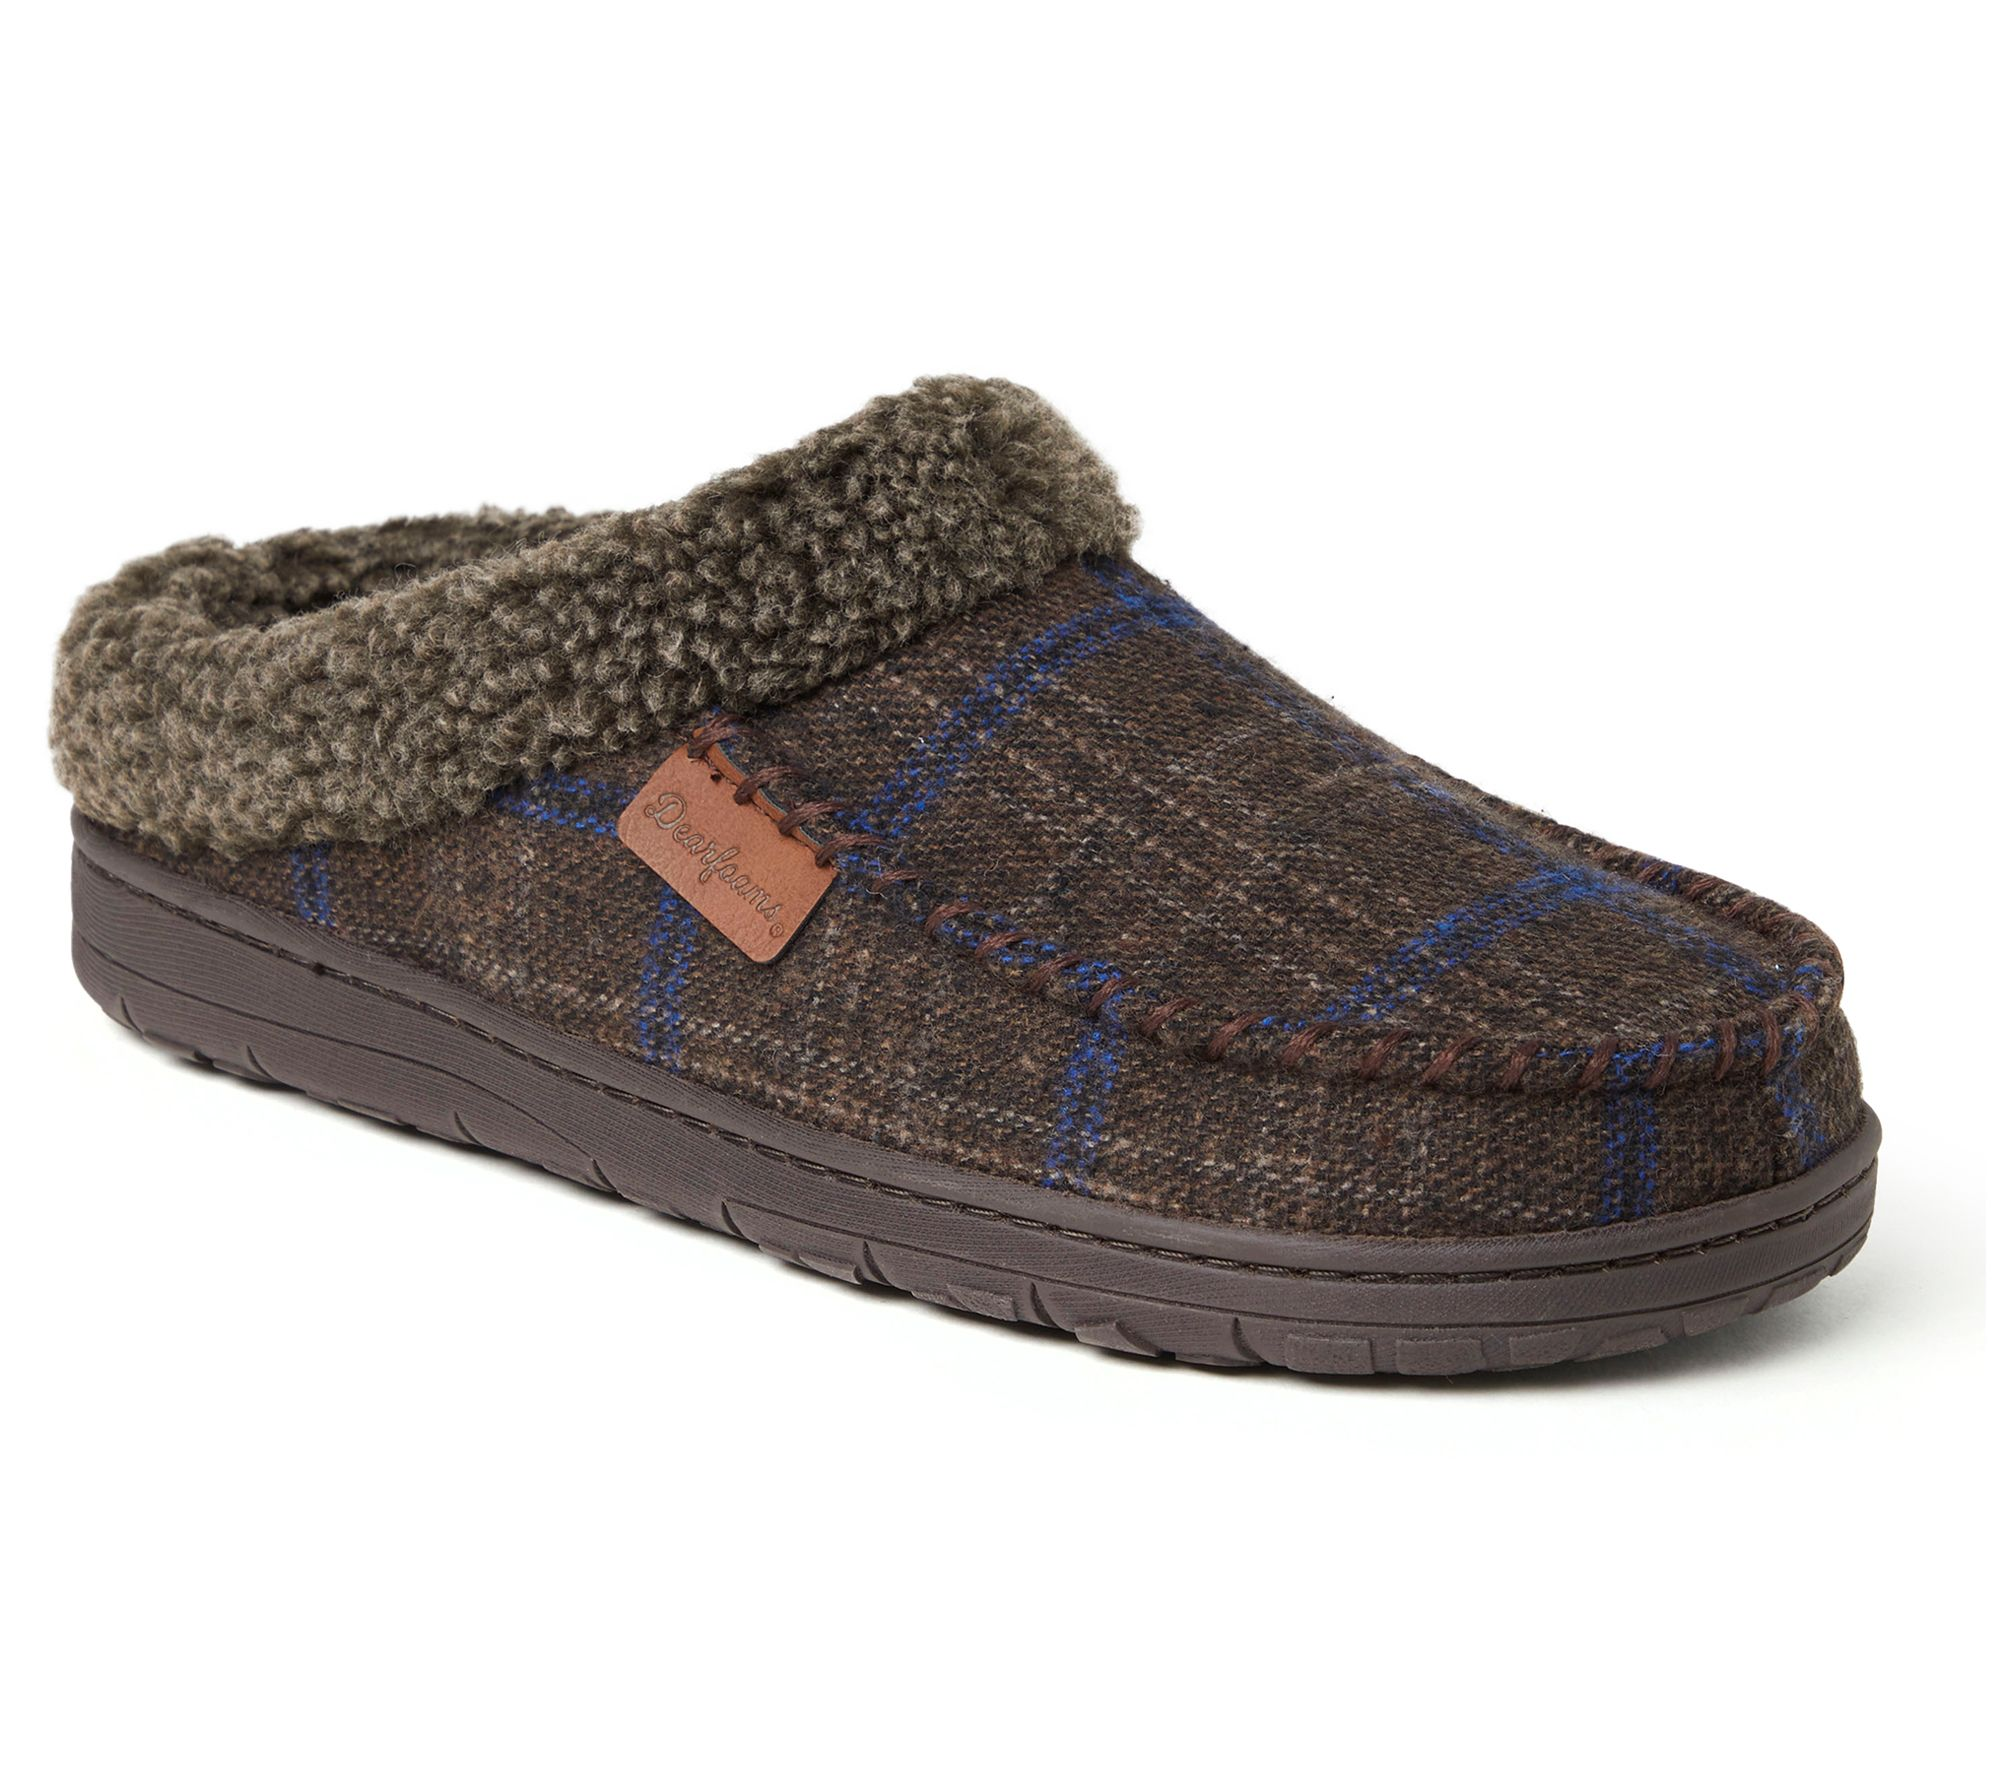 Save 47% on comfy suede slippers